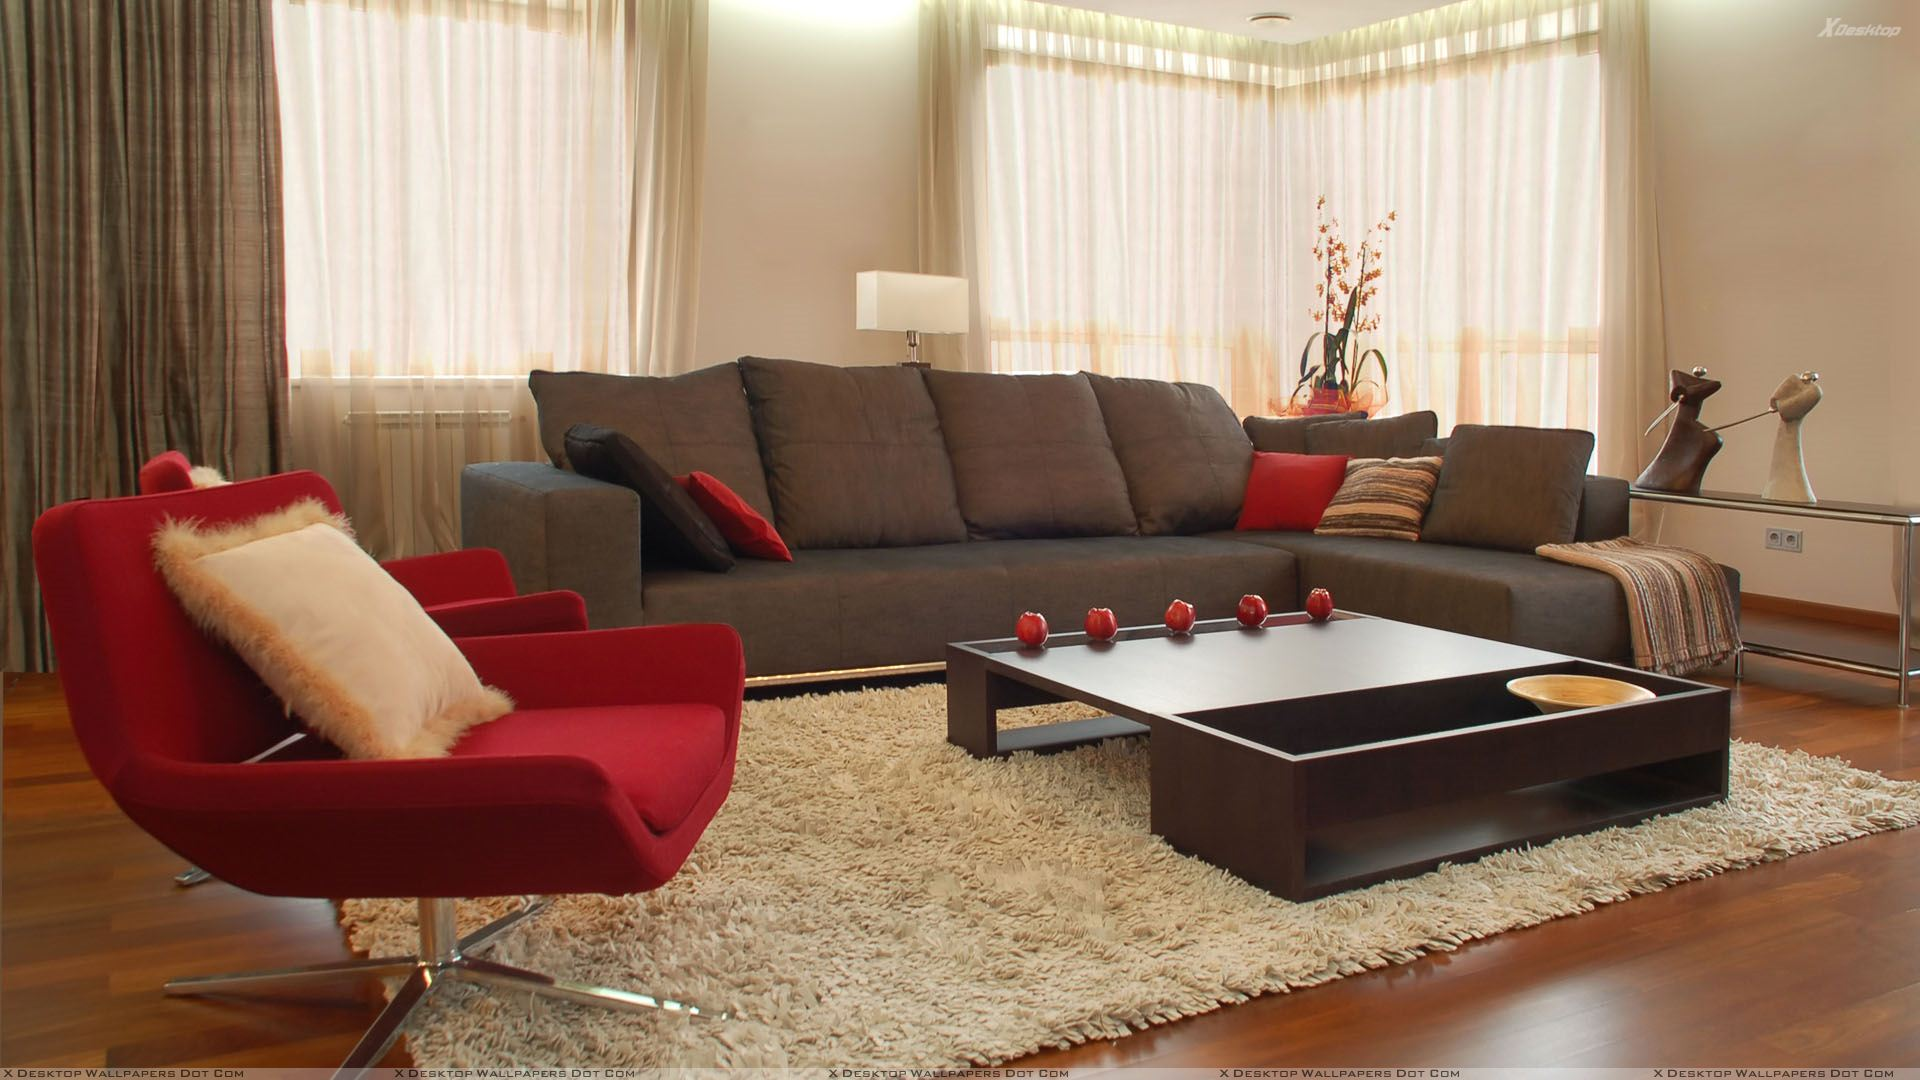 Red and grey sofa in resting room wallpaper for Living room chair ideas